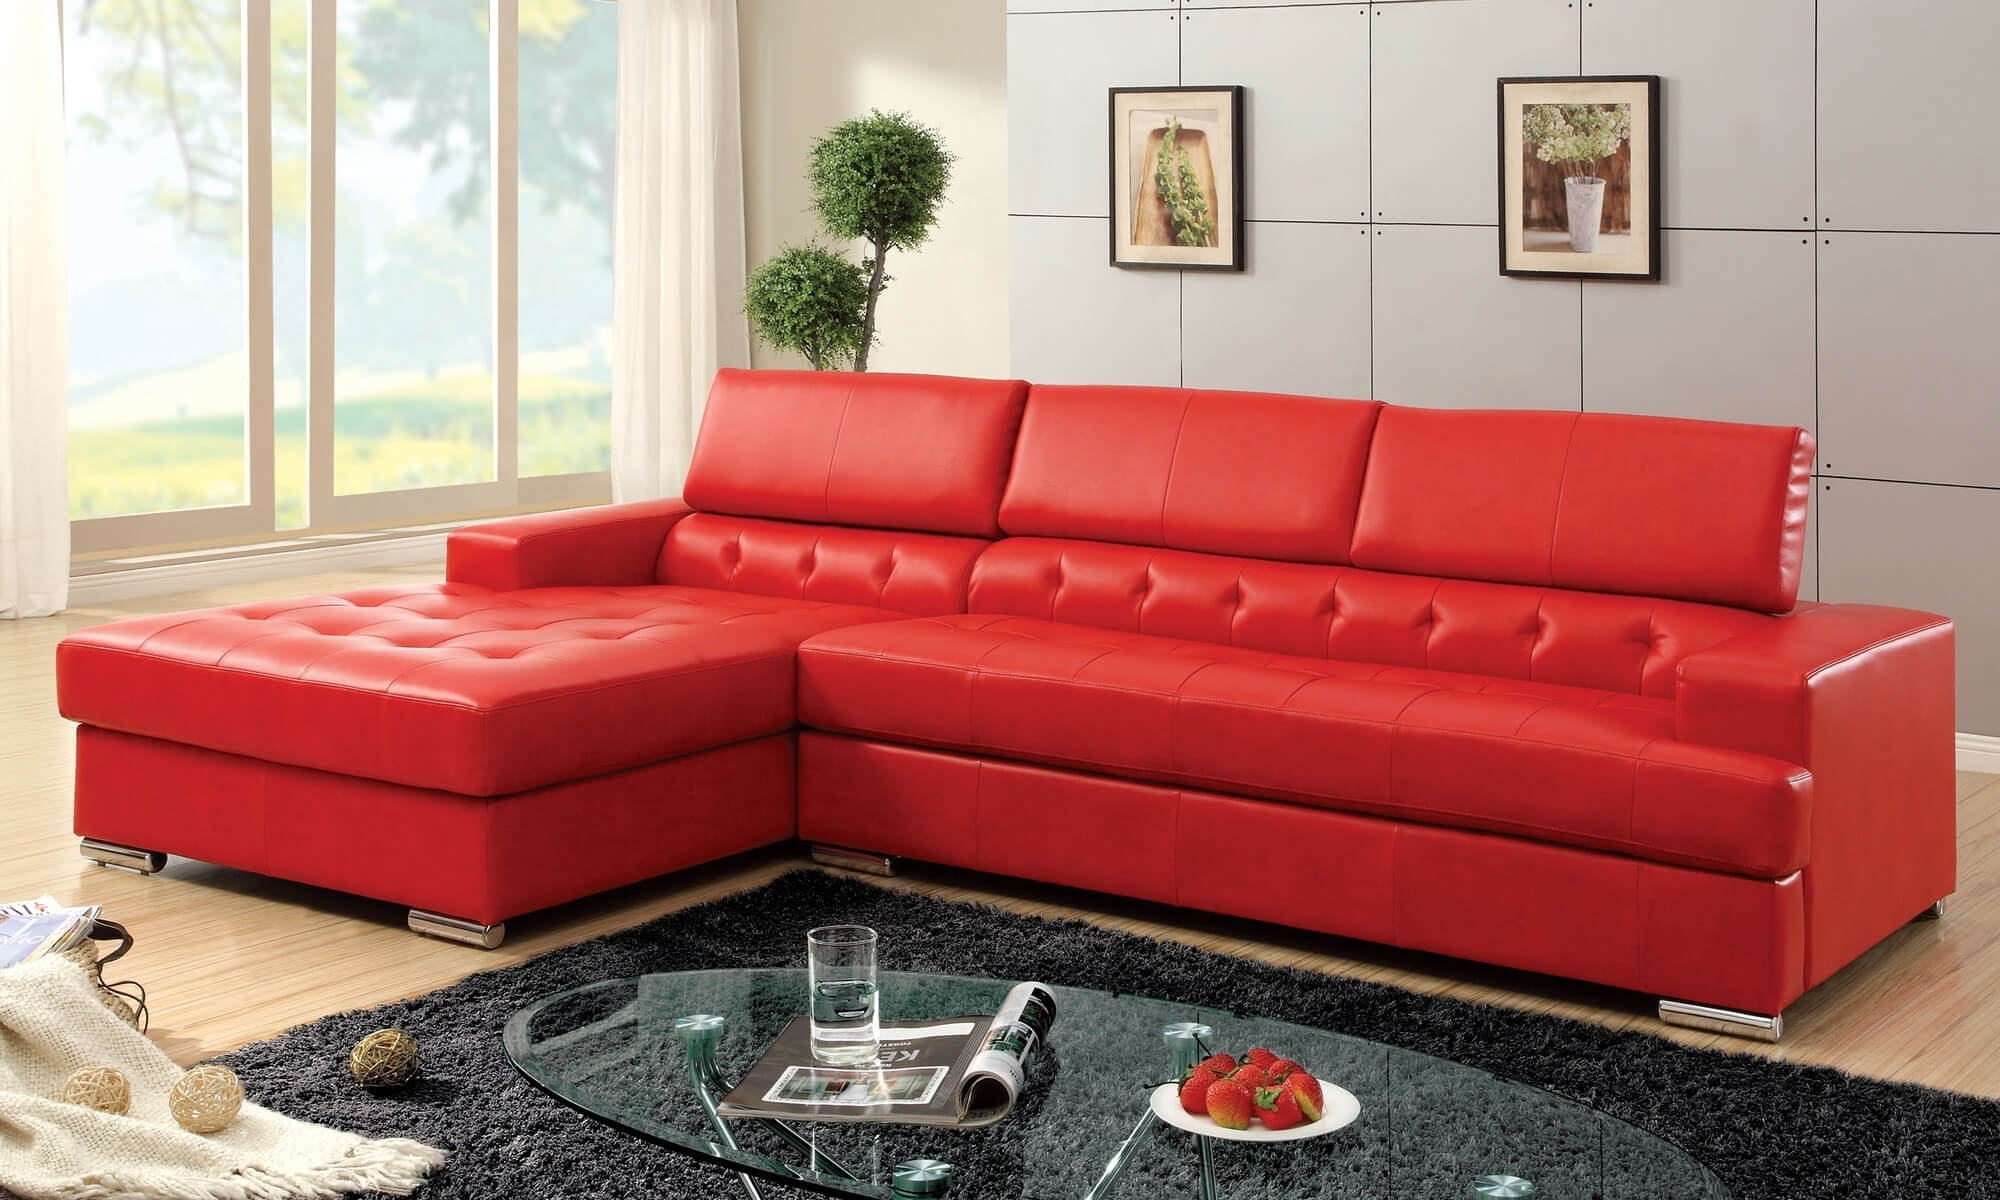 New Red Leather Sectional Sofa With Chaise – Best Sectional Sofa Ideas For Red Leather Sectionals With Chaise (Image 4 of 10)